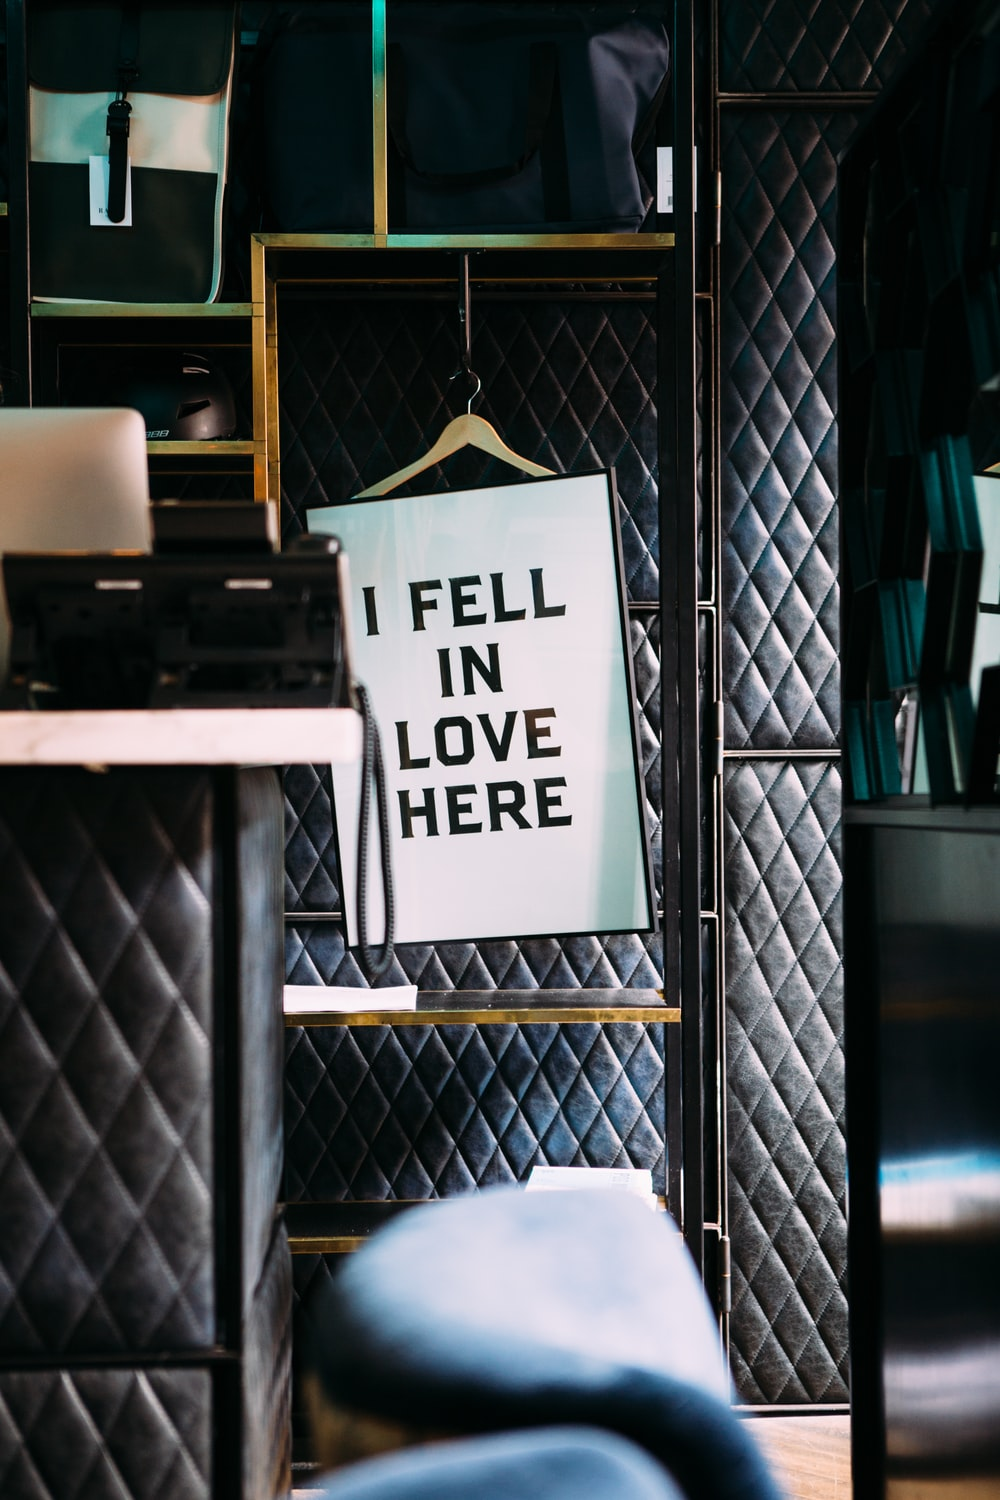 i fell in love here poster in a room